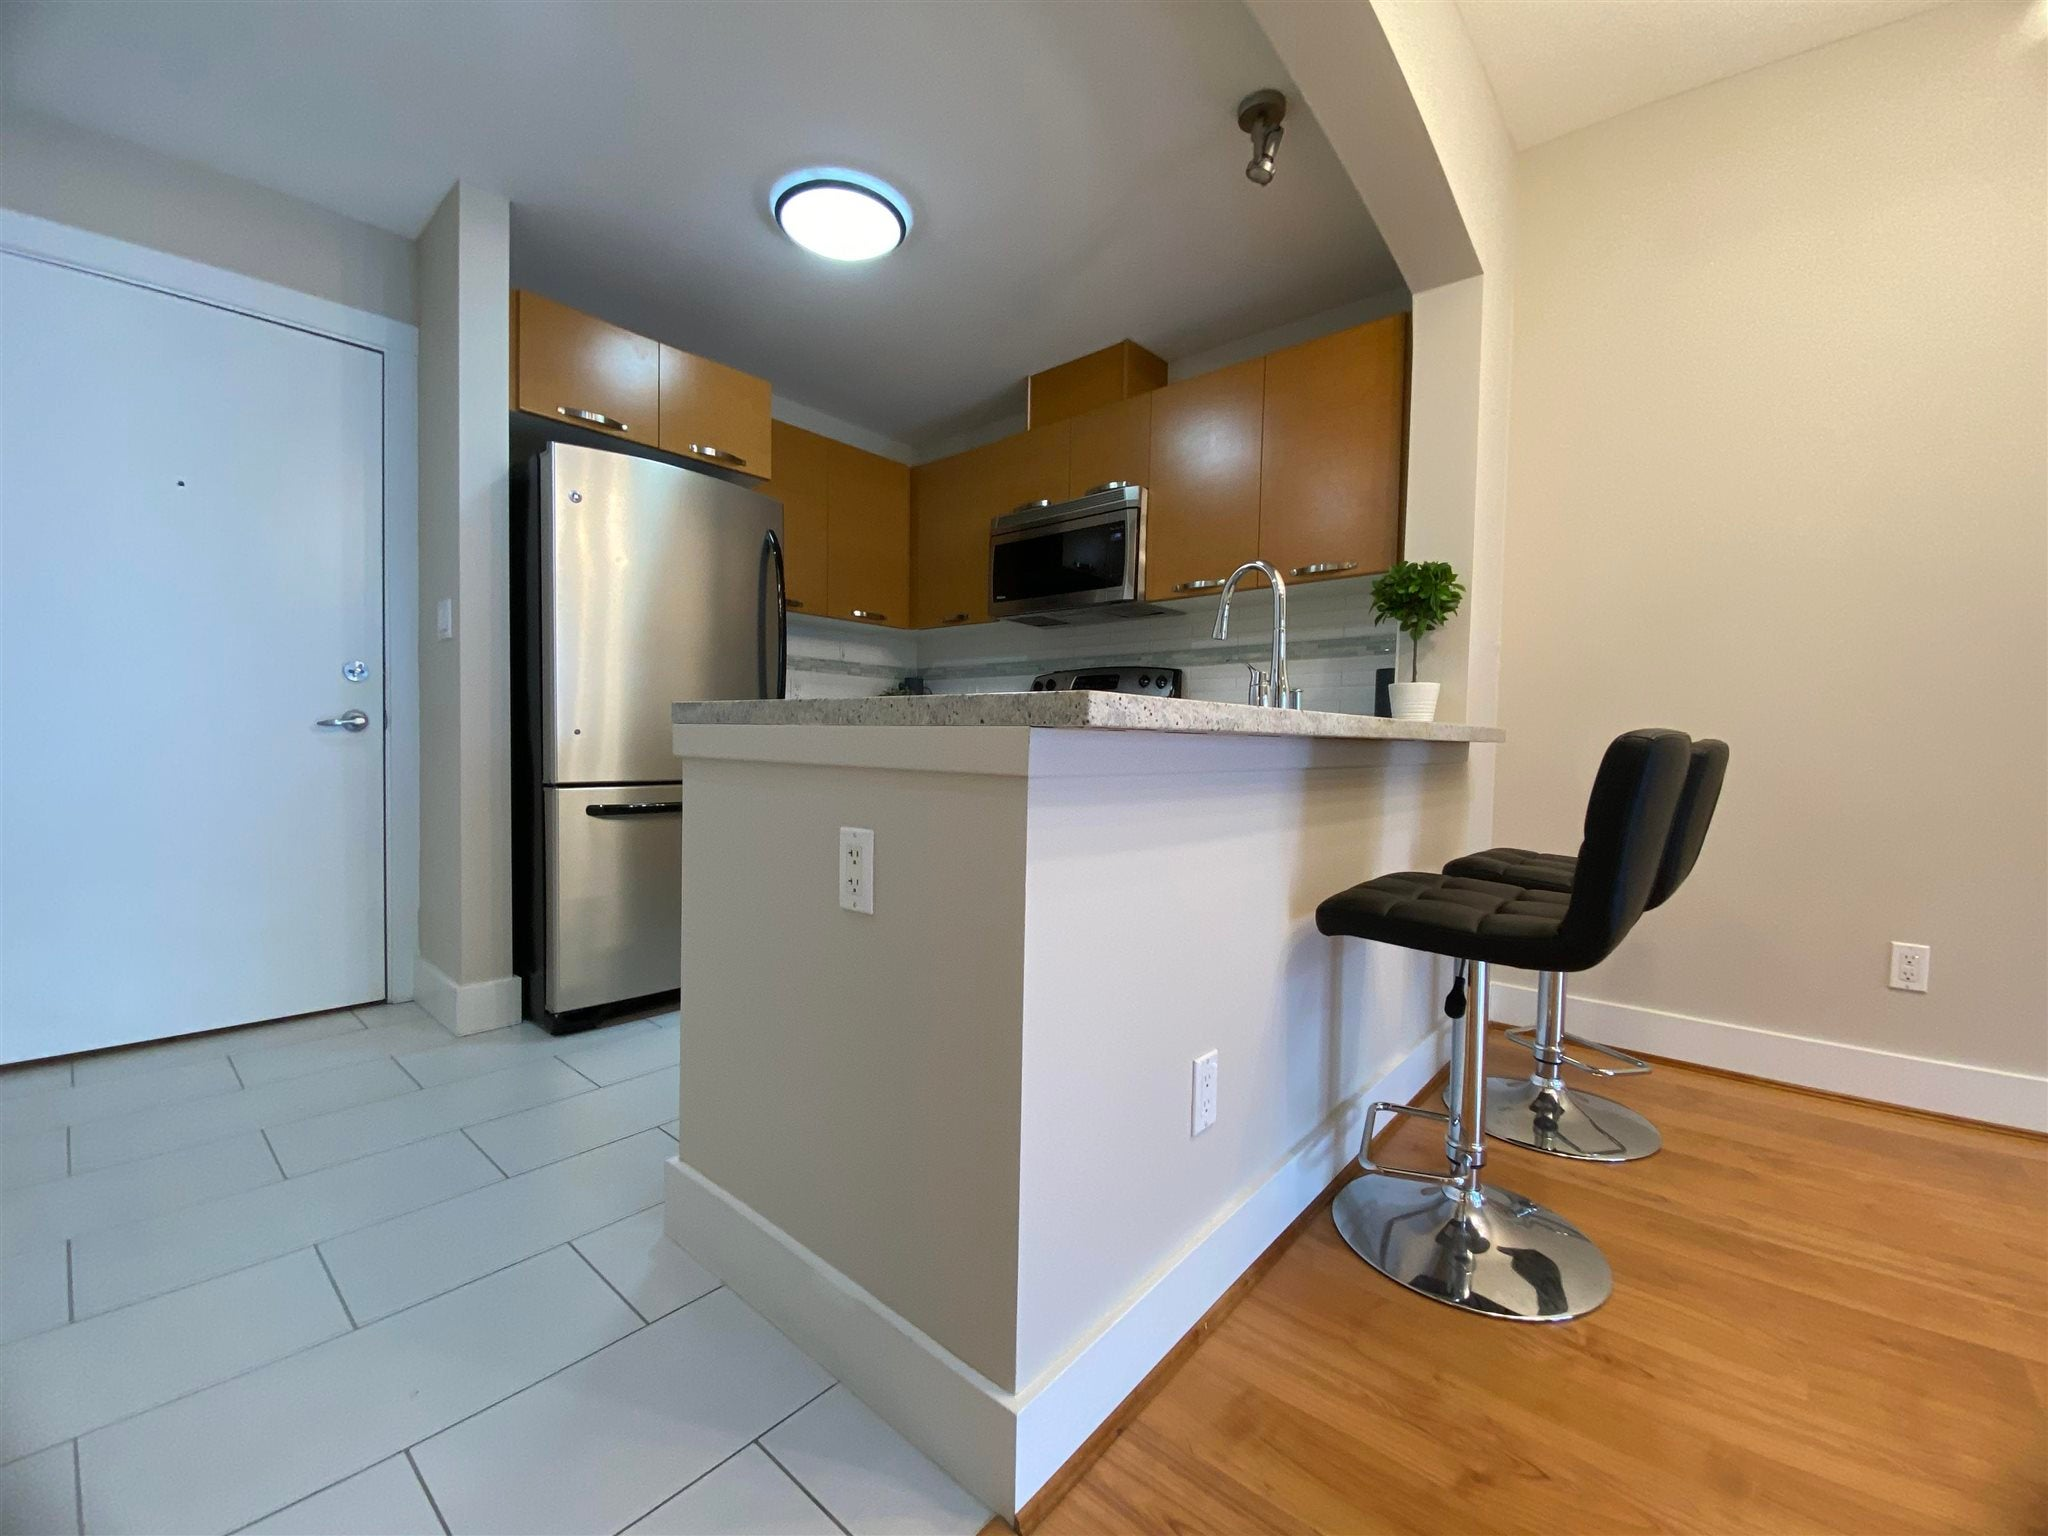 304 7428 BYRNEPARK WALK - South Slope Apartment/Condo for sale, 1 Bedroom (R2604124) - #2